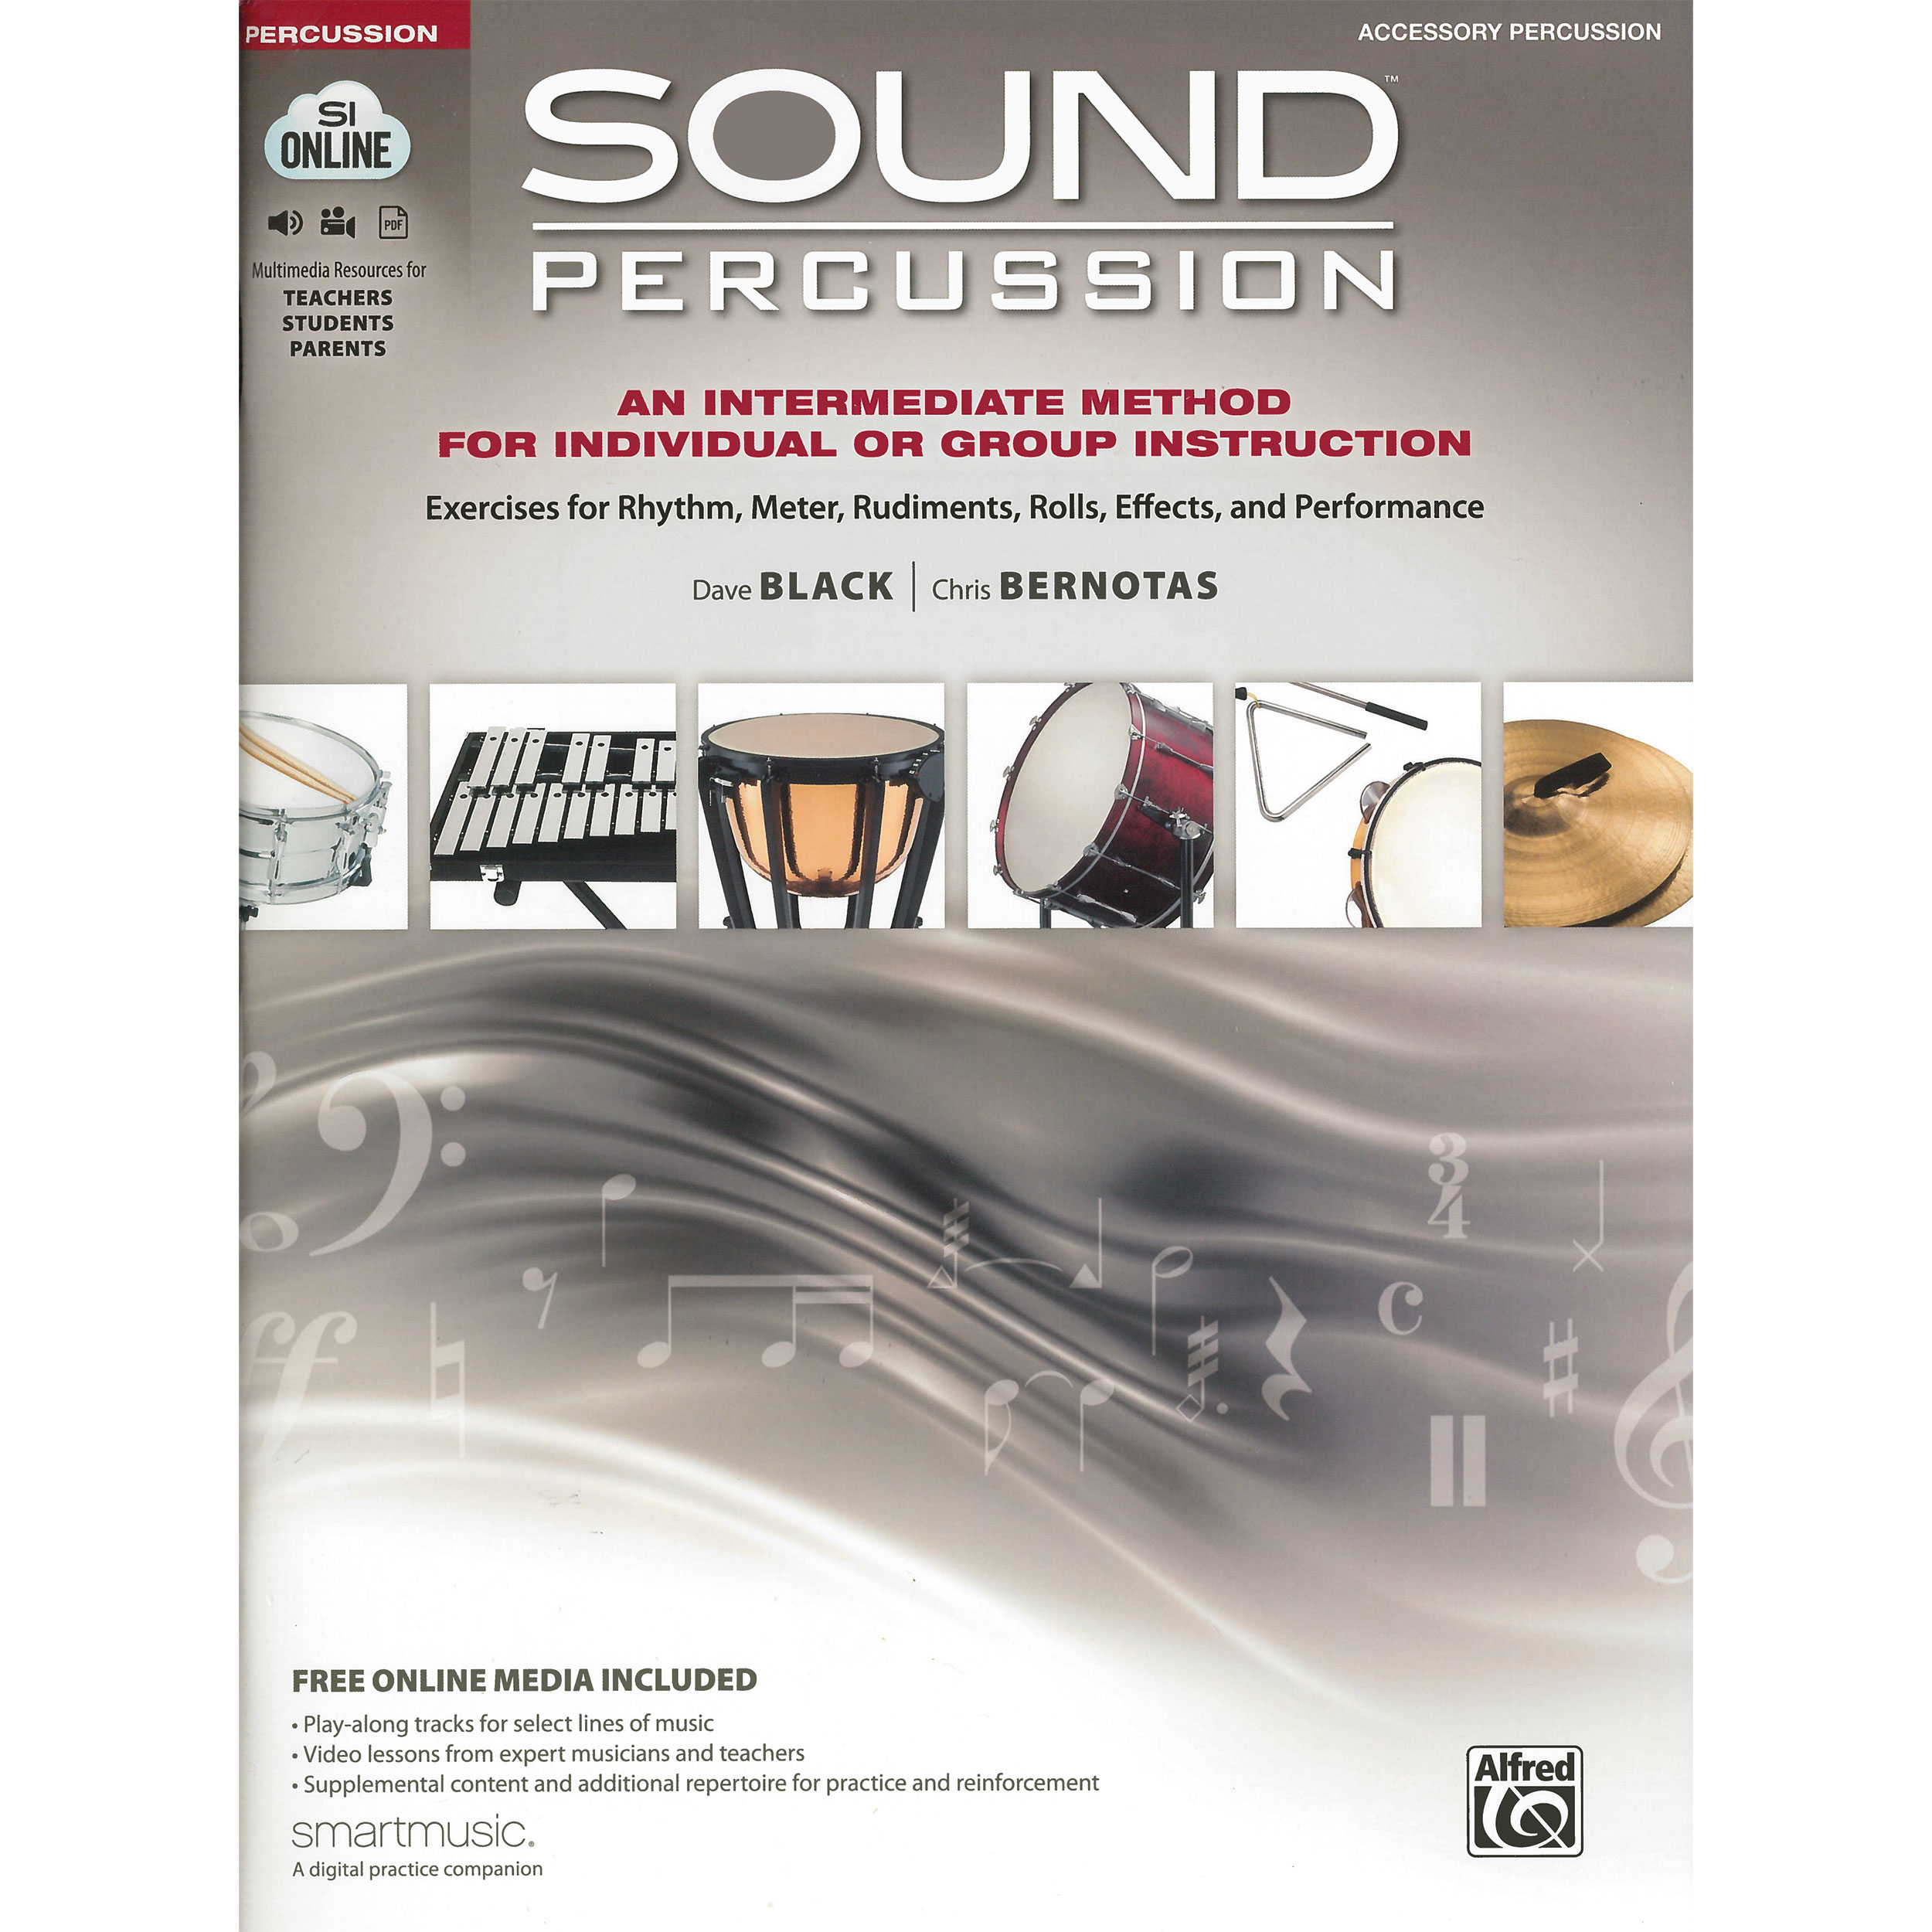 Sound Percussion by Dave Black and Chris Bernotas (Accessory Percussion)